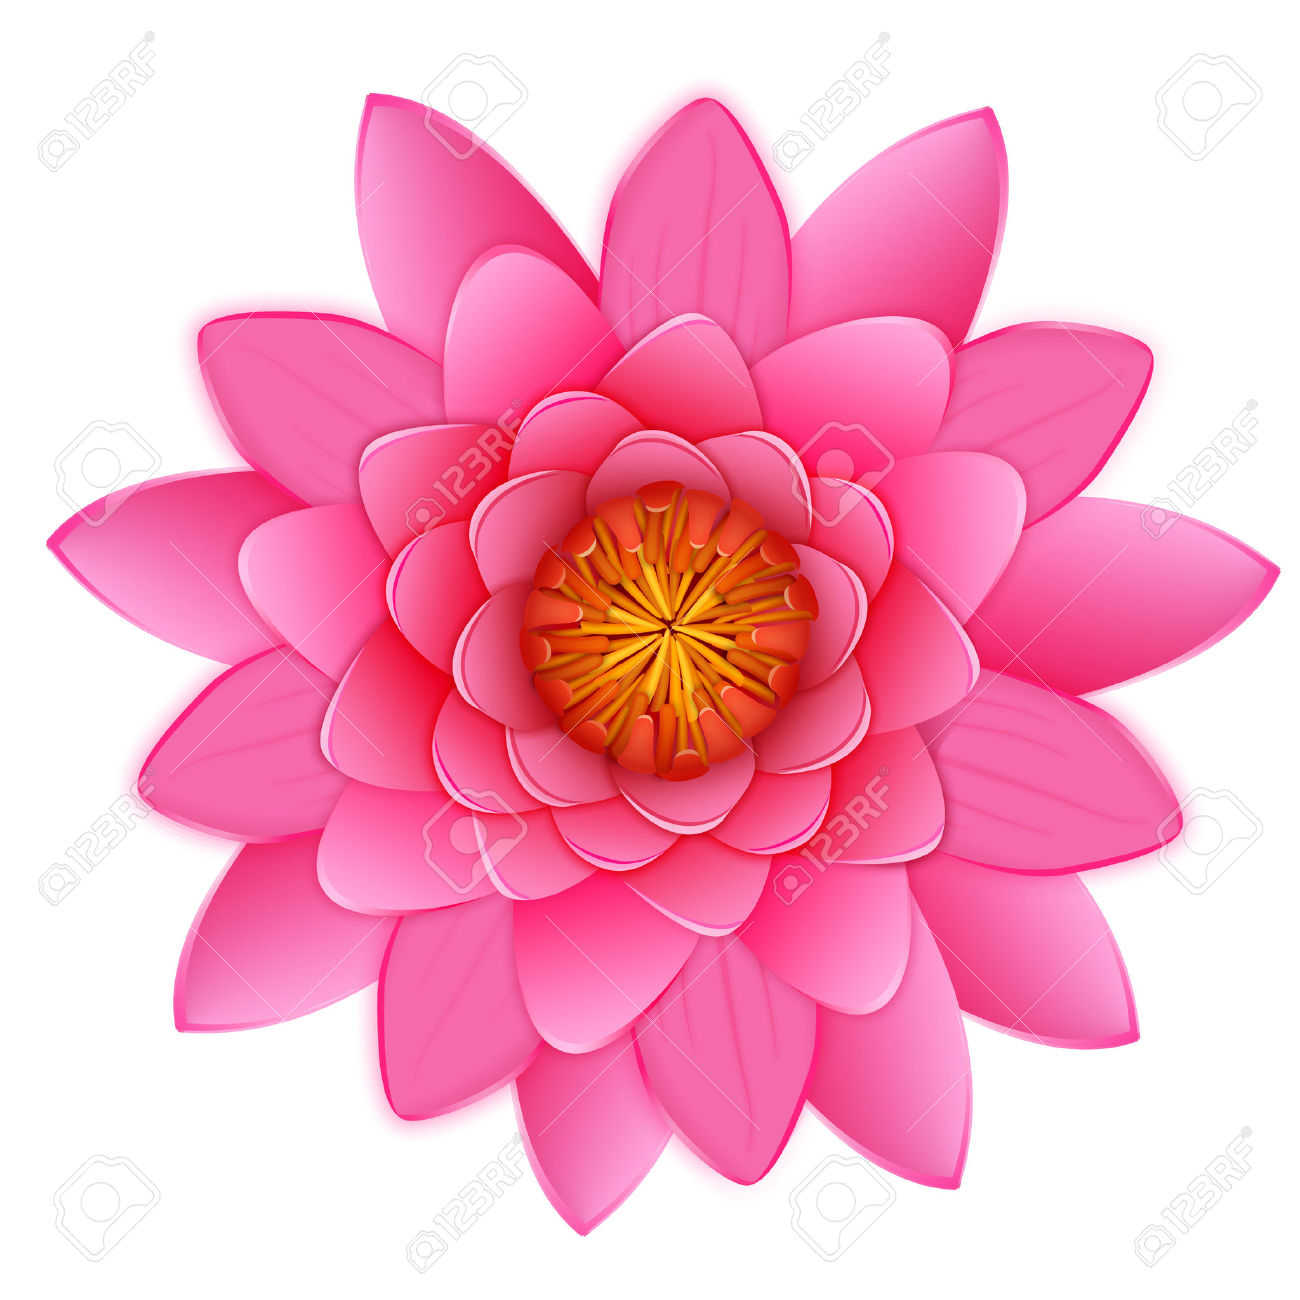 Beautiful Pink Lotus Or Waterlily Flower Isolated On White.